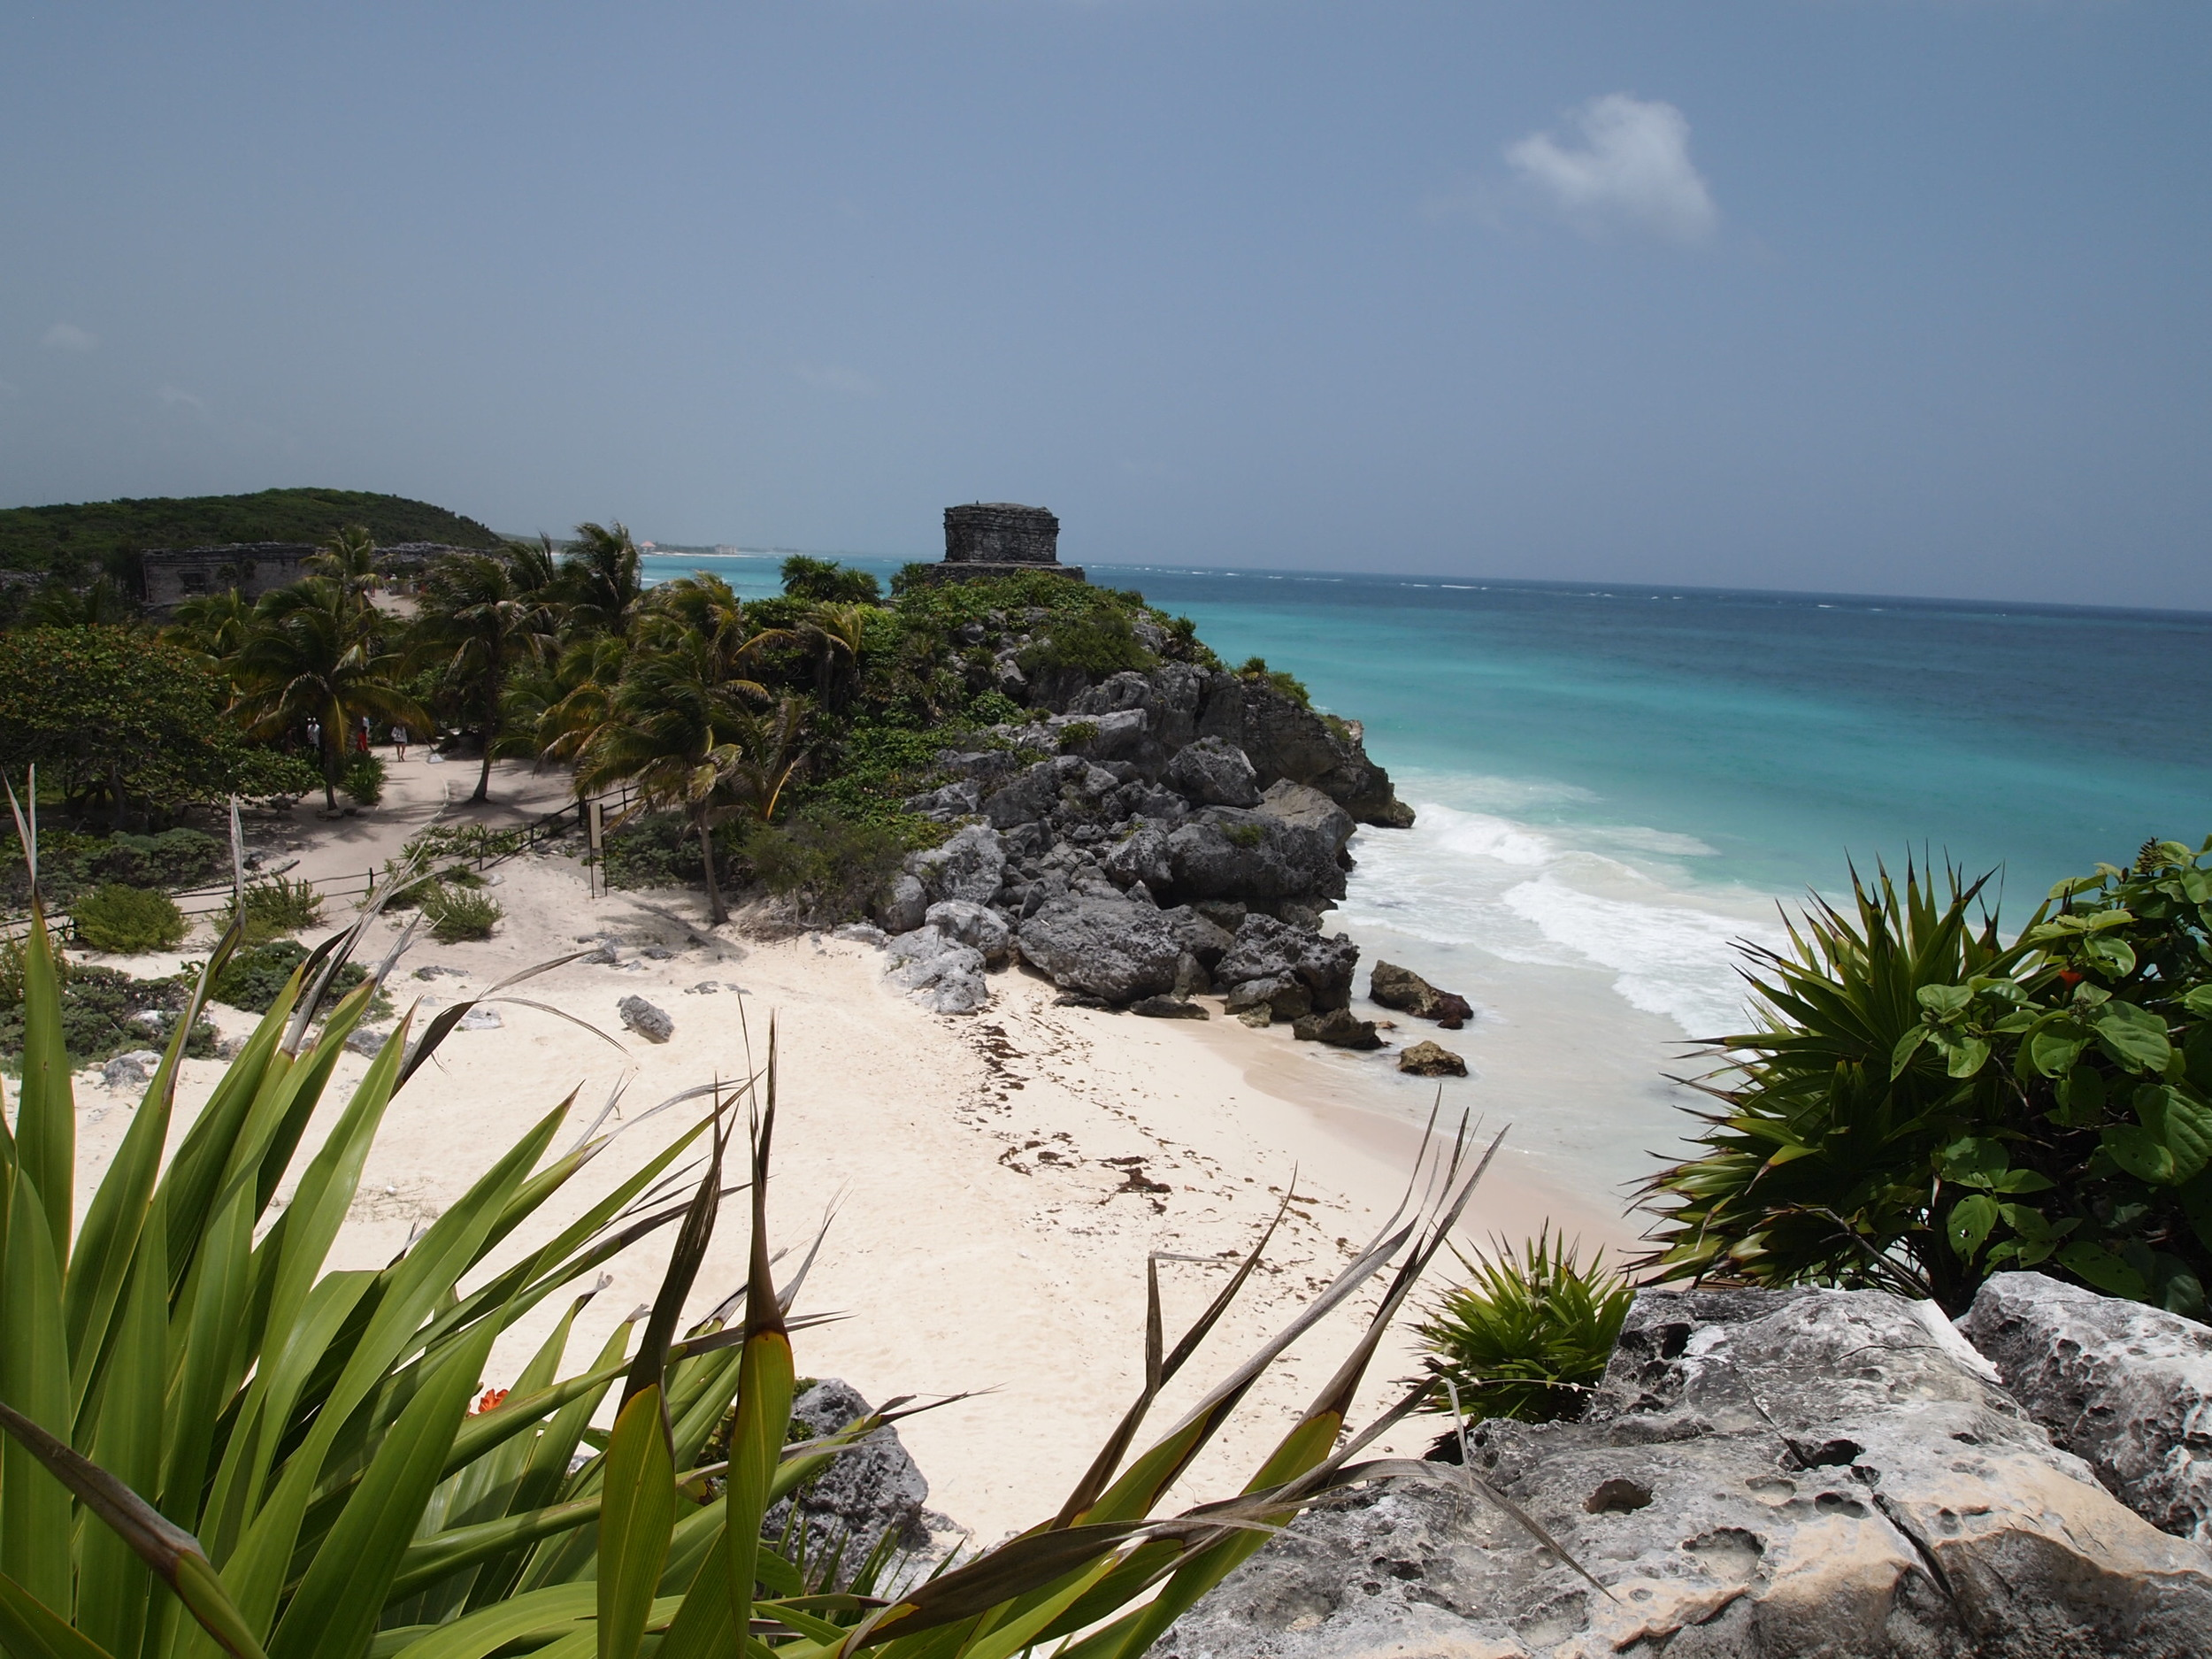 Tulum Ruins, about 3km from the hotel zone {entry cost: 59 Pesos which can ONLY be paid in cash}